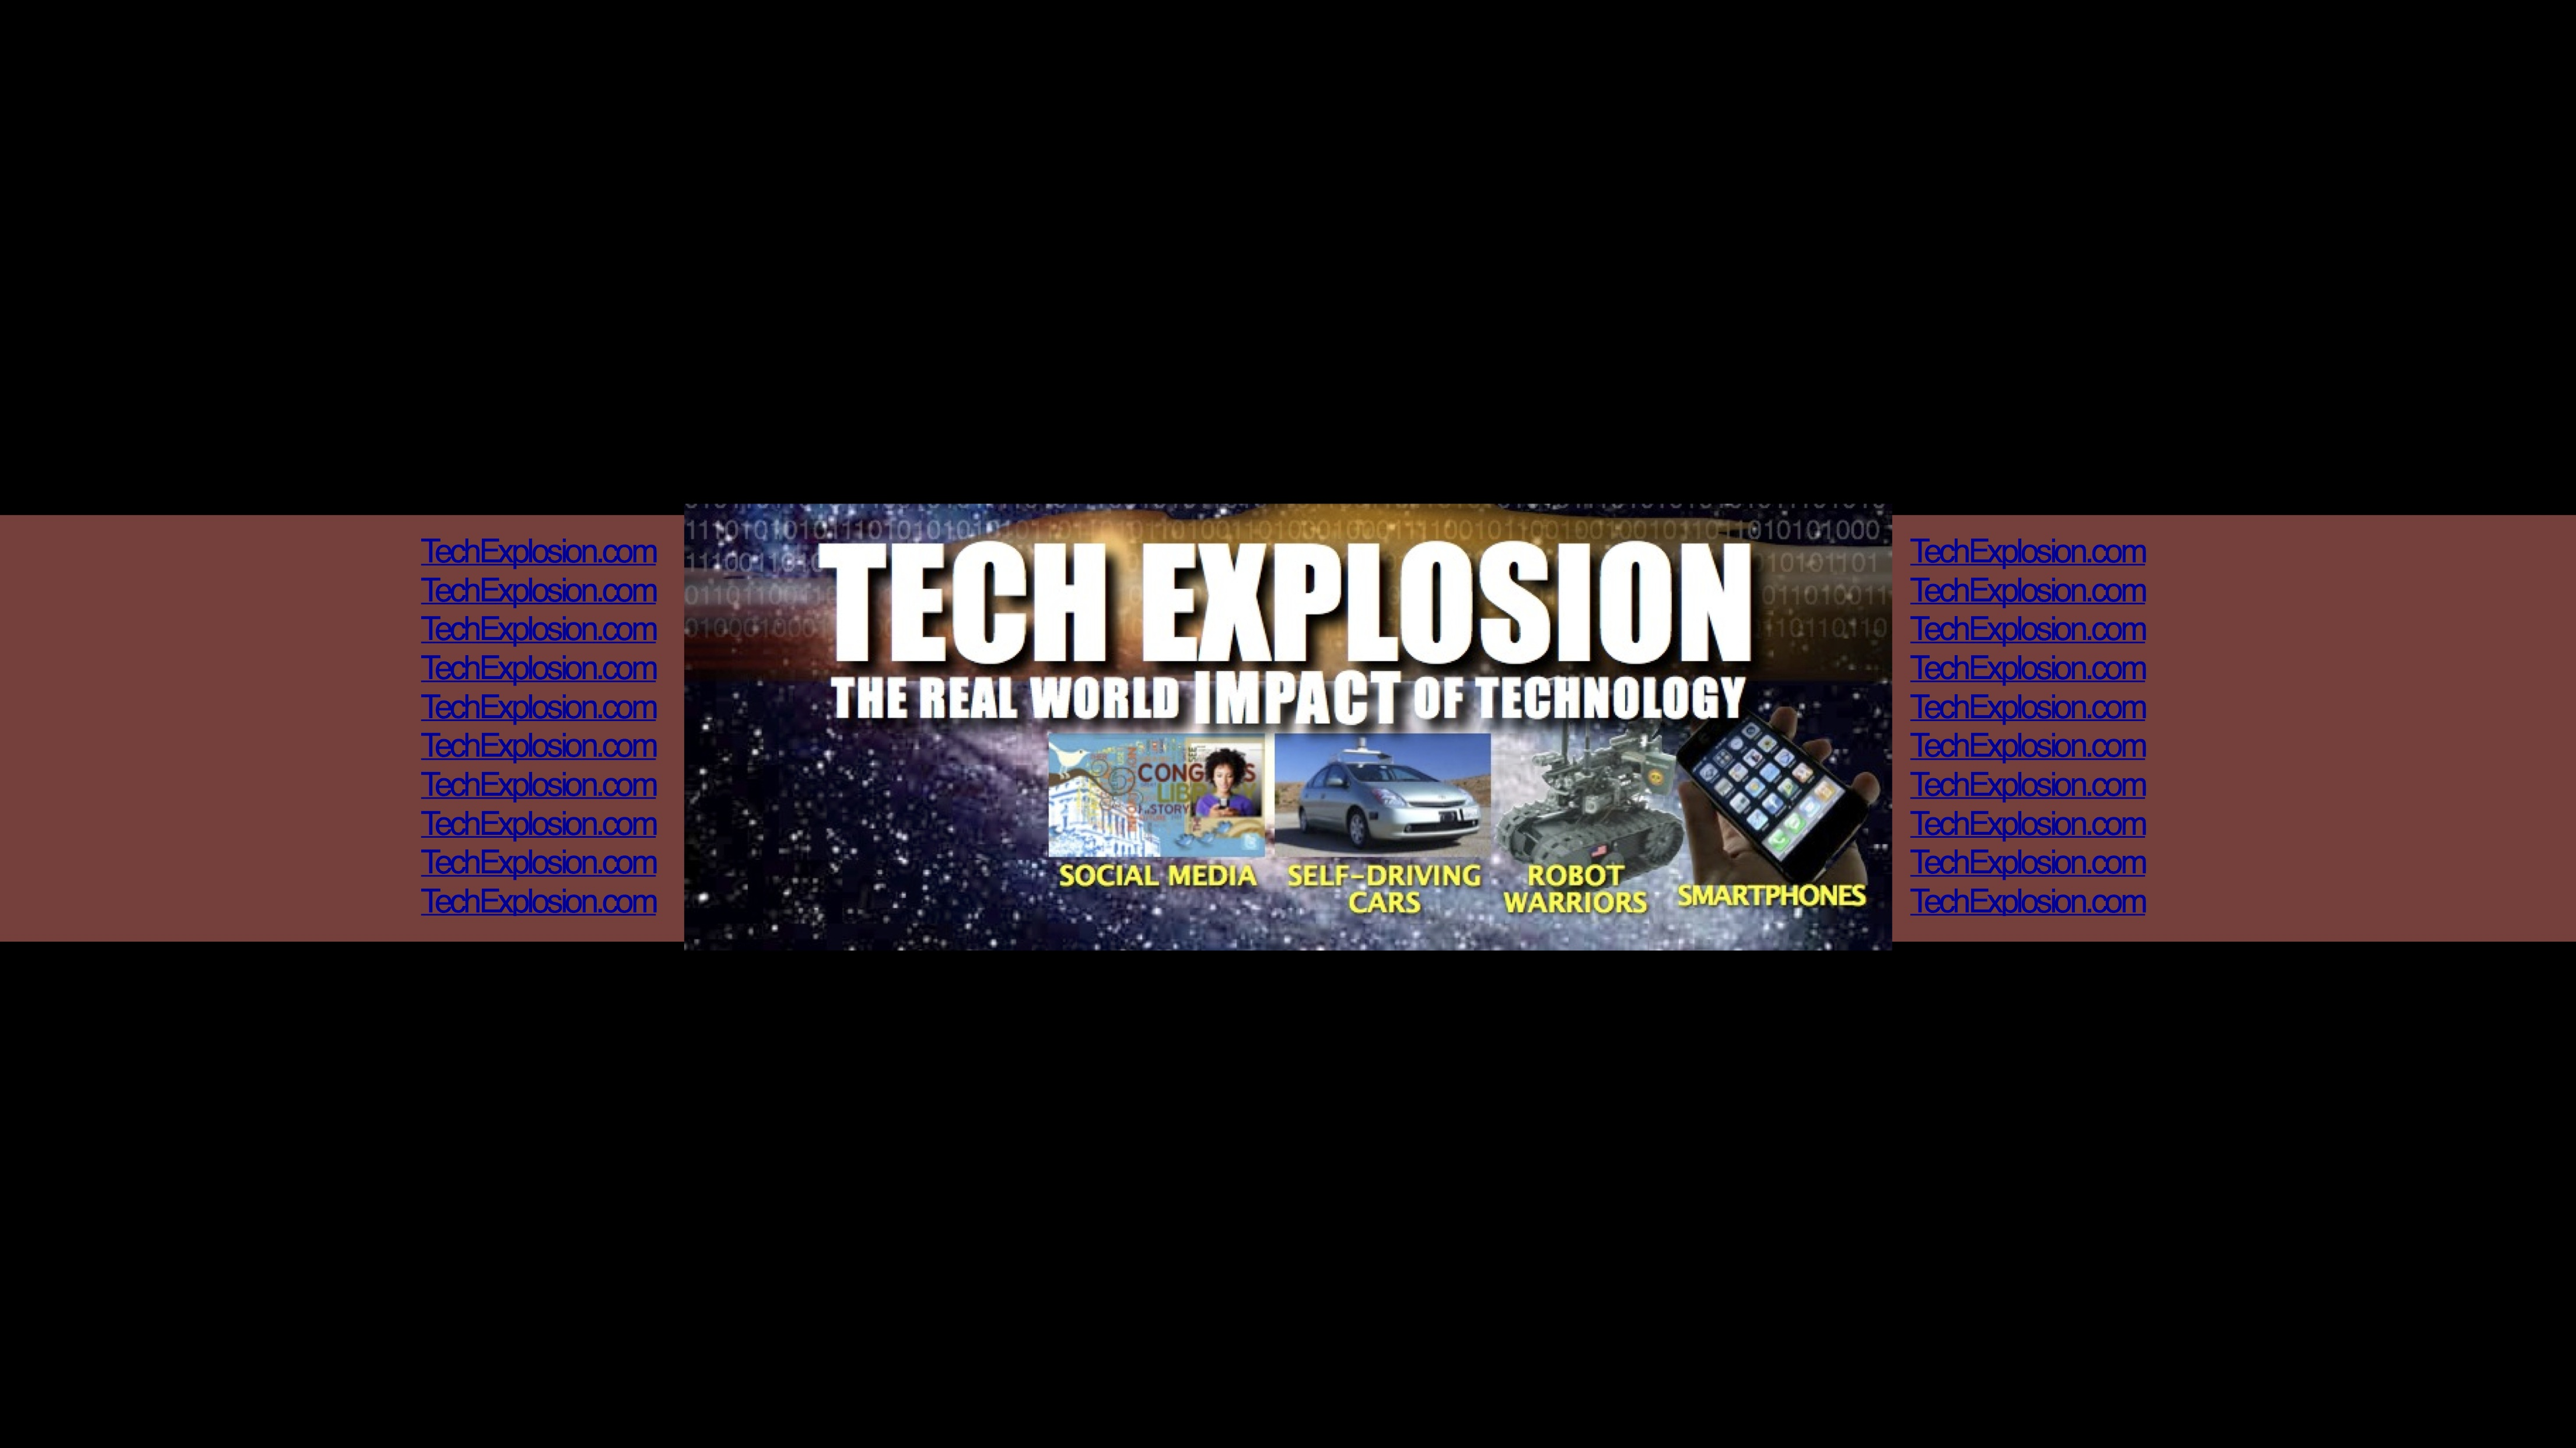 Tech Explosion Youtube Channel